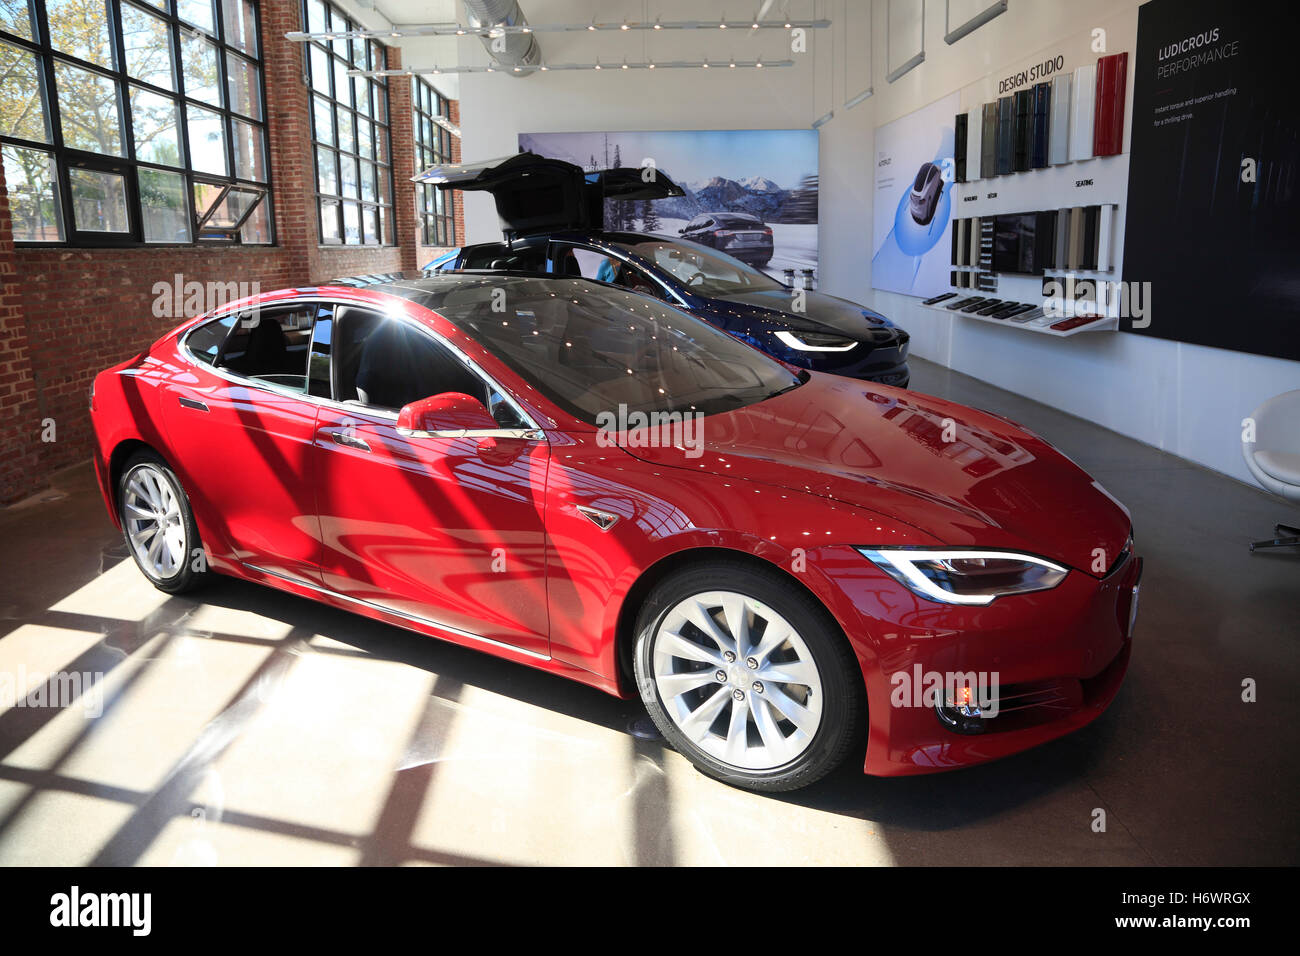 TESLA Model S in a Showroom, Red Hook, Brooklyn, New York, USA - Stock Image